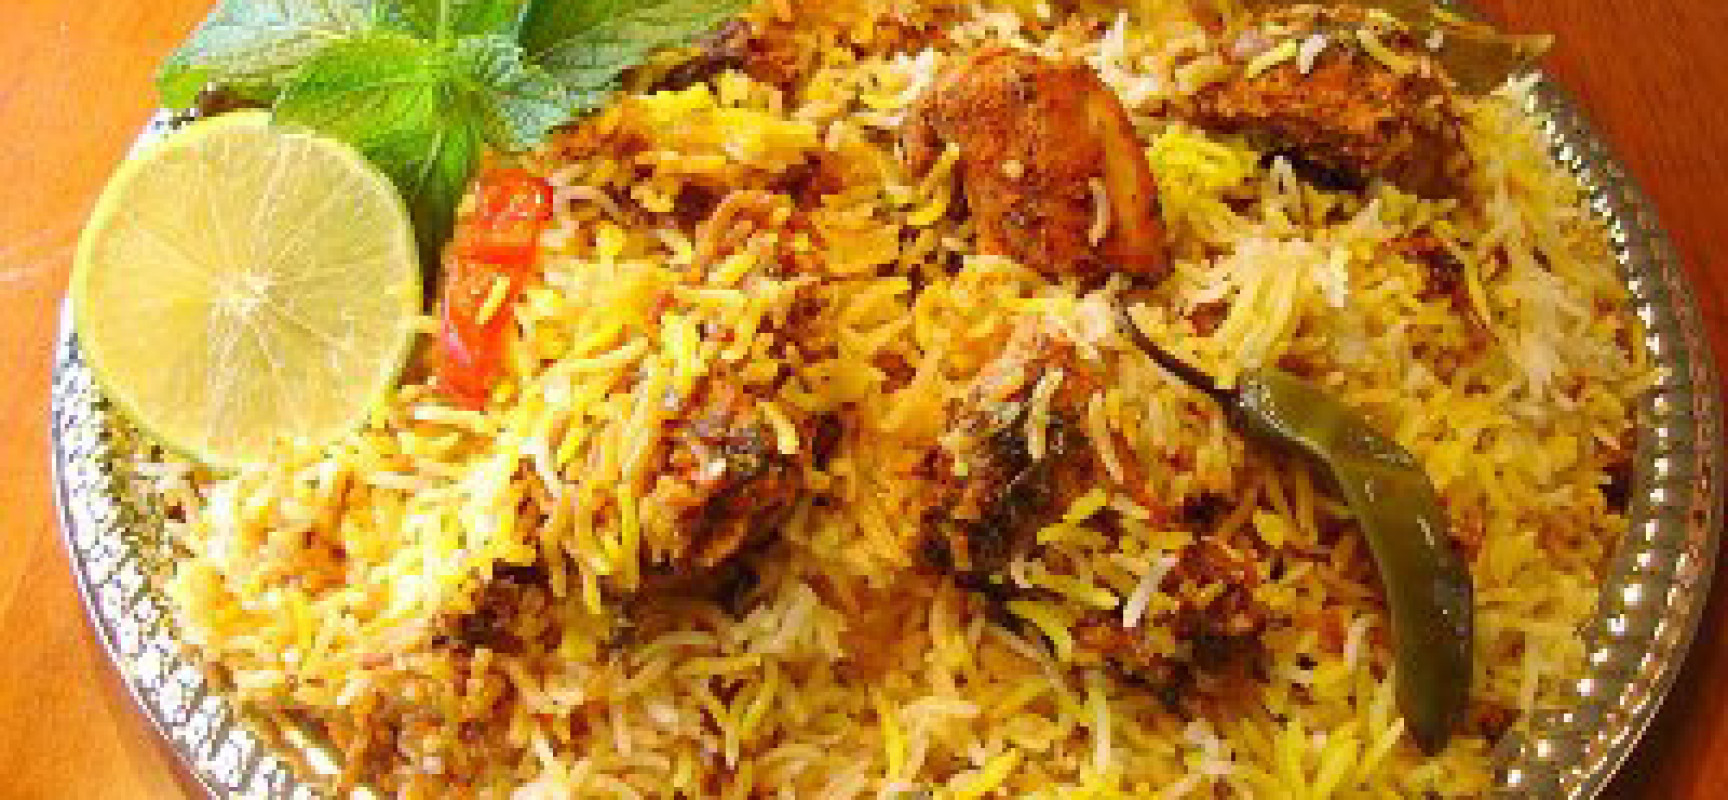 Cuisine of the Kings: Mughlai Food